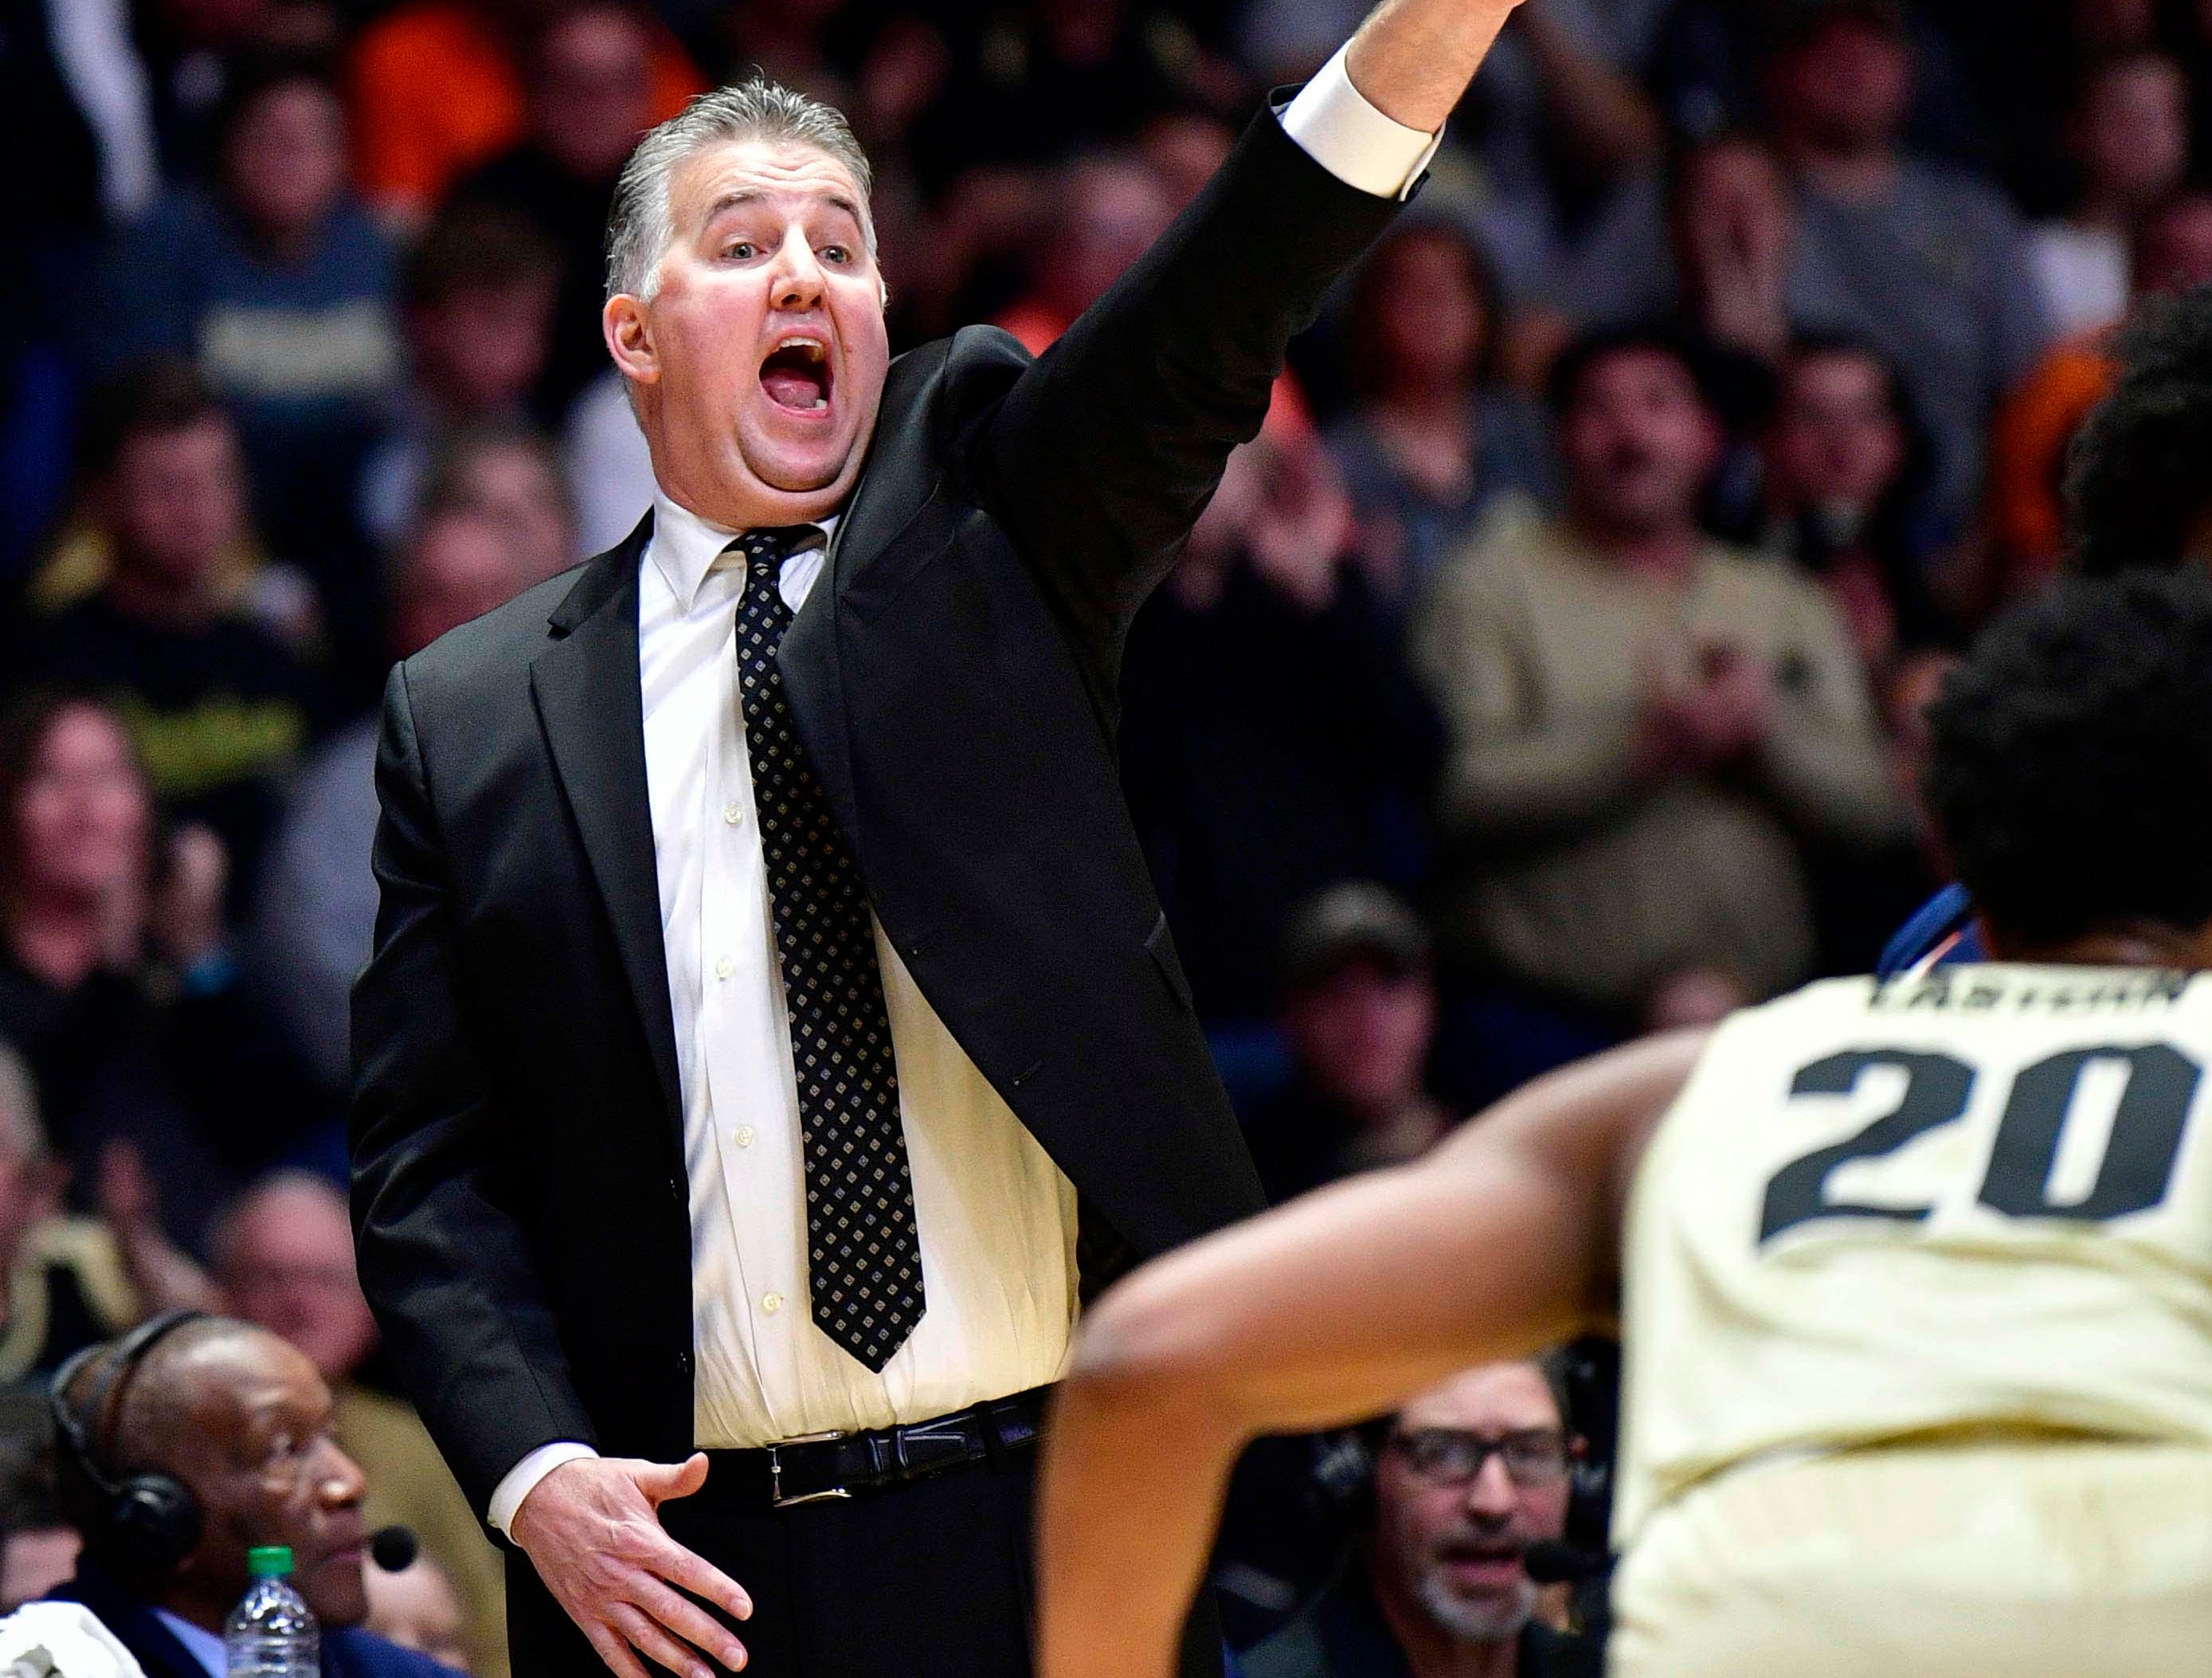 Feb 27, 2019; West Lafayette, IN, USA; Purdue Boilermakers head coach Matt Painter signals to his team during the first half of the game against the Illinois Fighting Illini at Mackey Arena. Mandatory Credit: Marc Lebryk-USA TODAY Sports